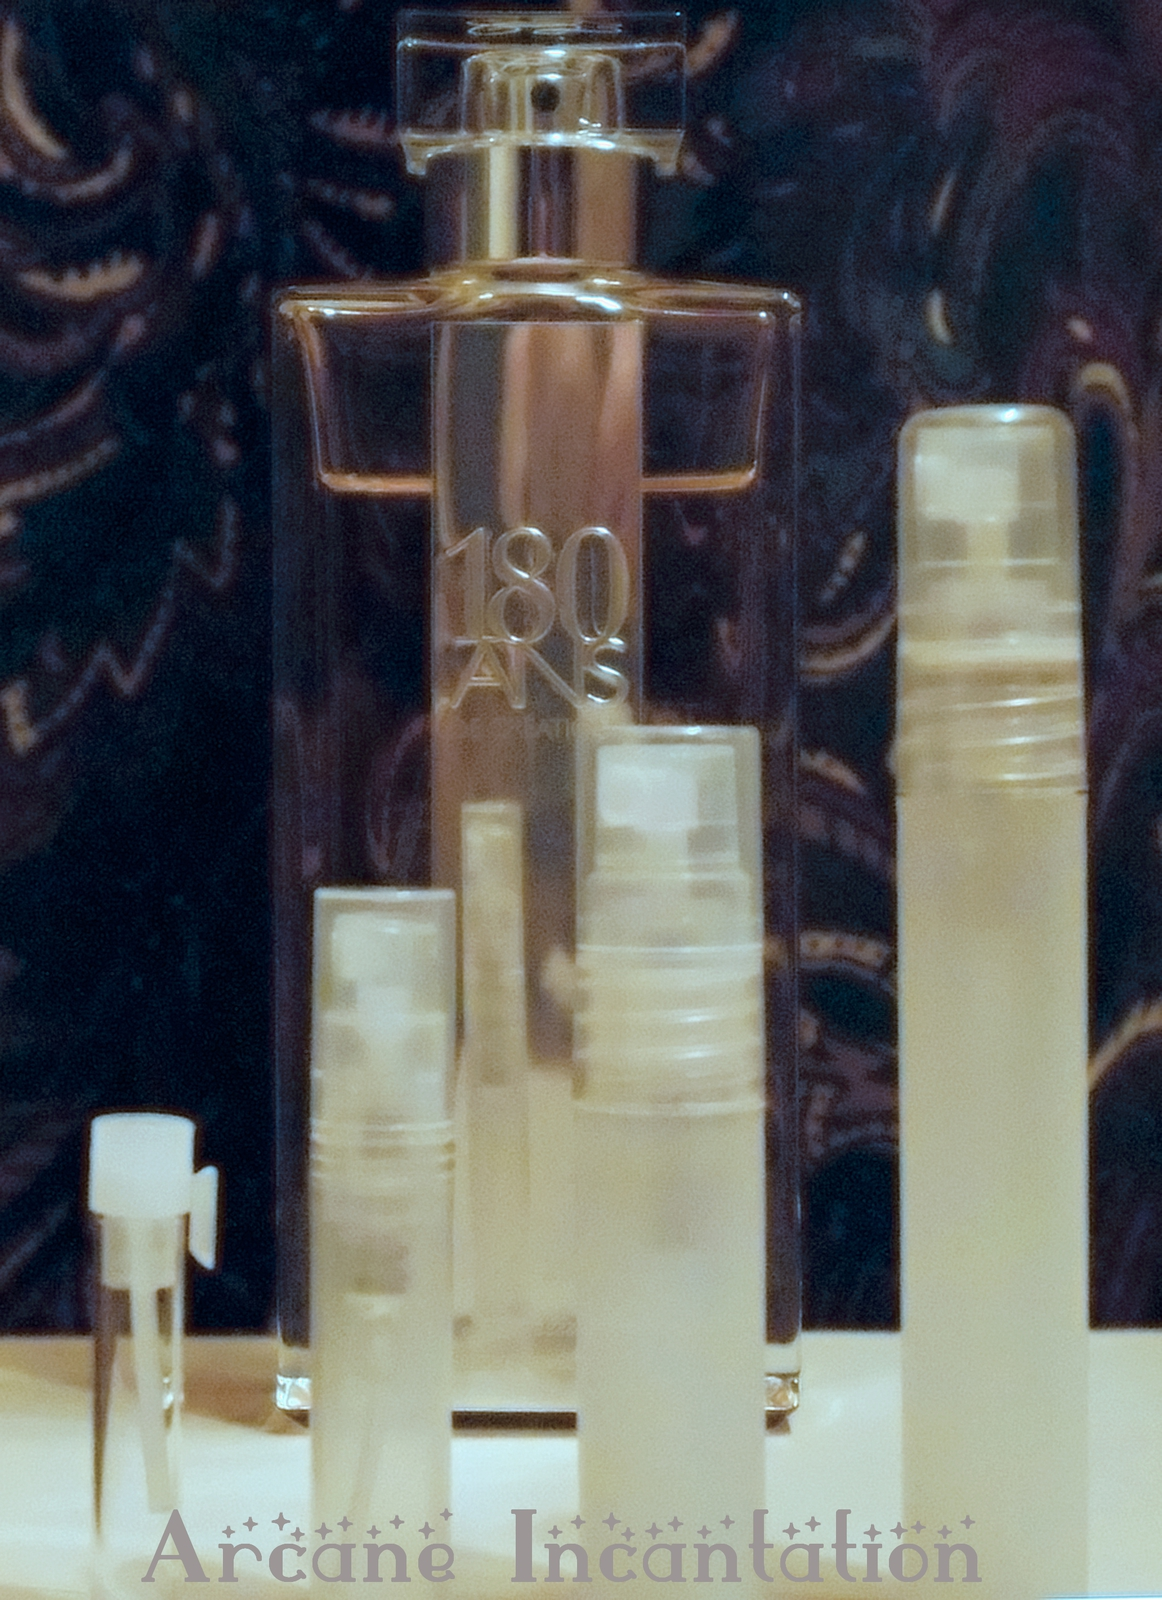 Image 0 of Guerlain 180 Ans de Creations LE Samples